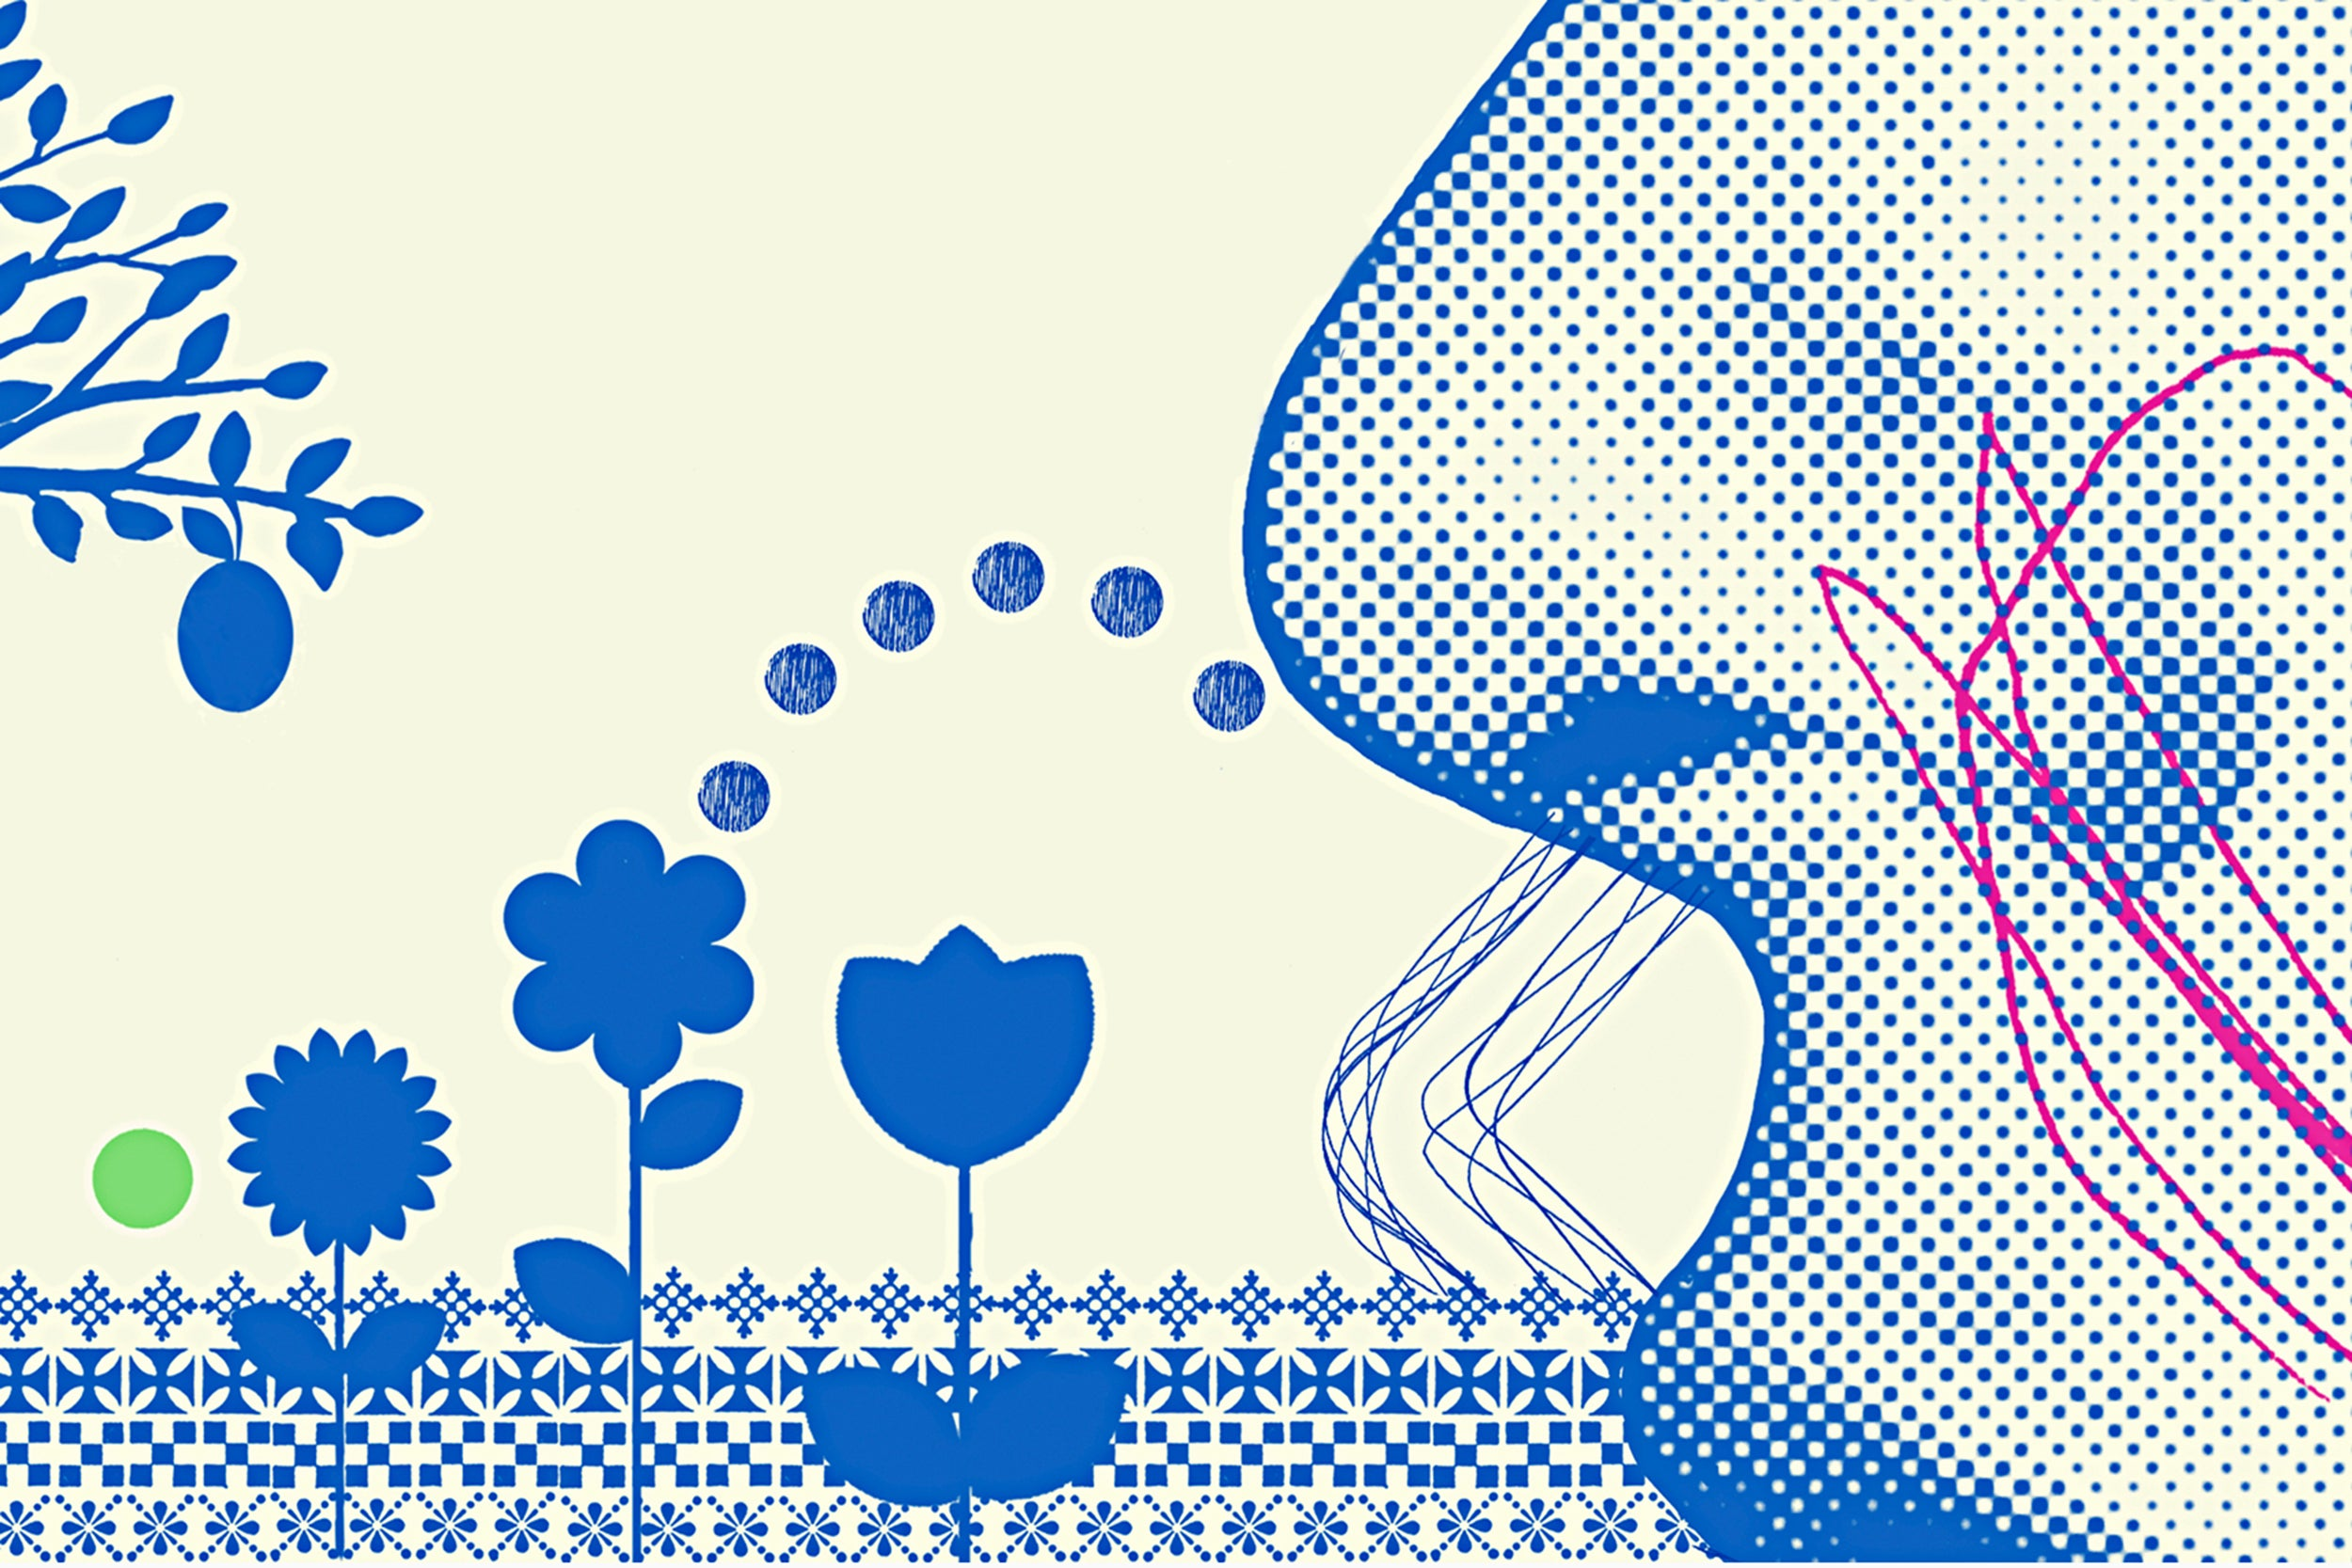 Illustration of a person smelling flowers.